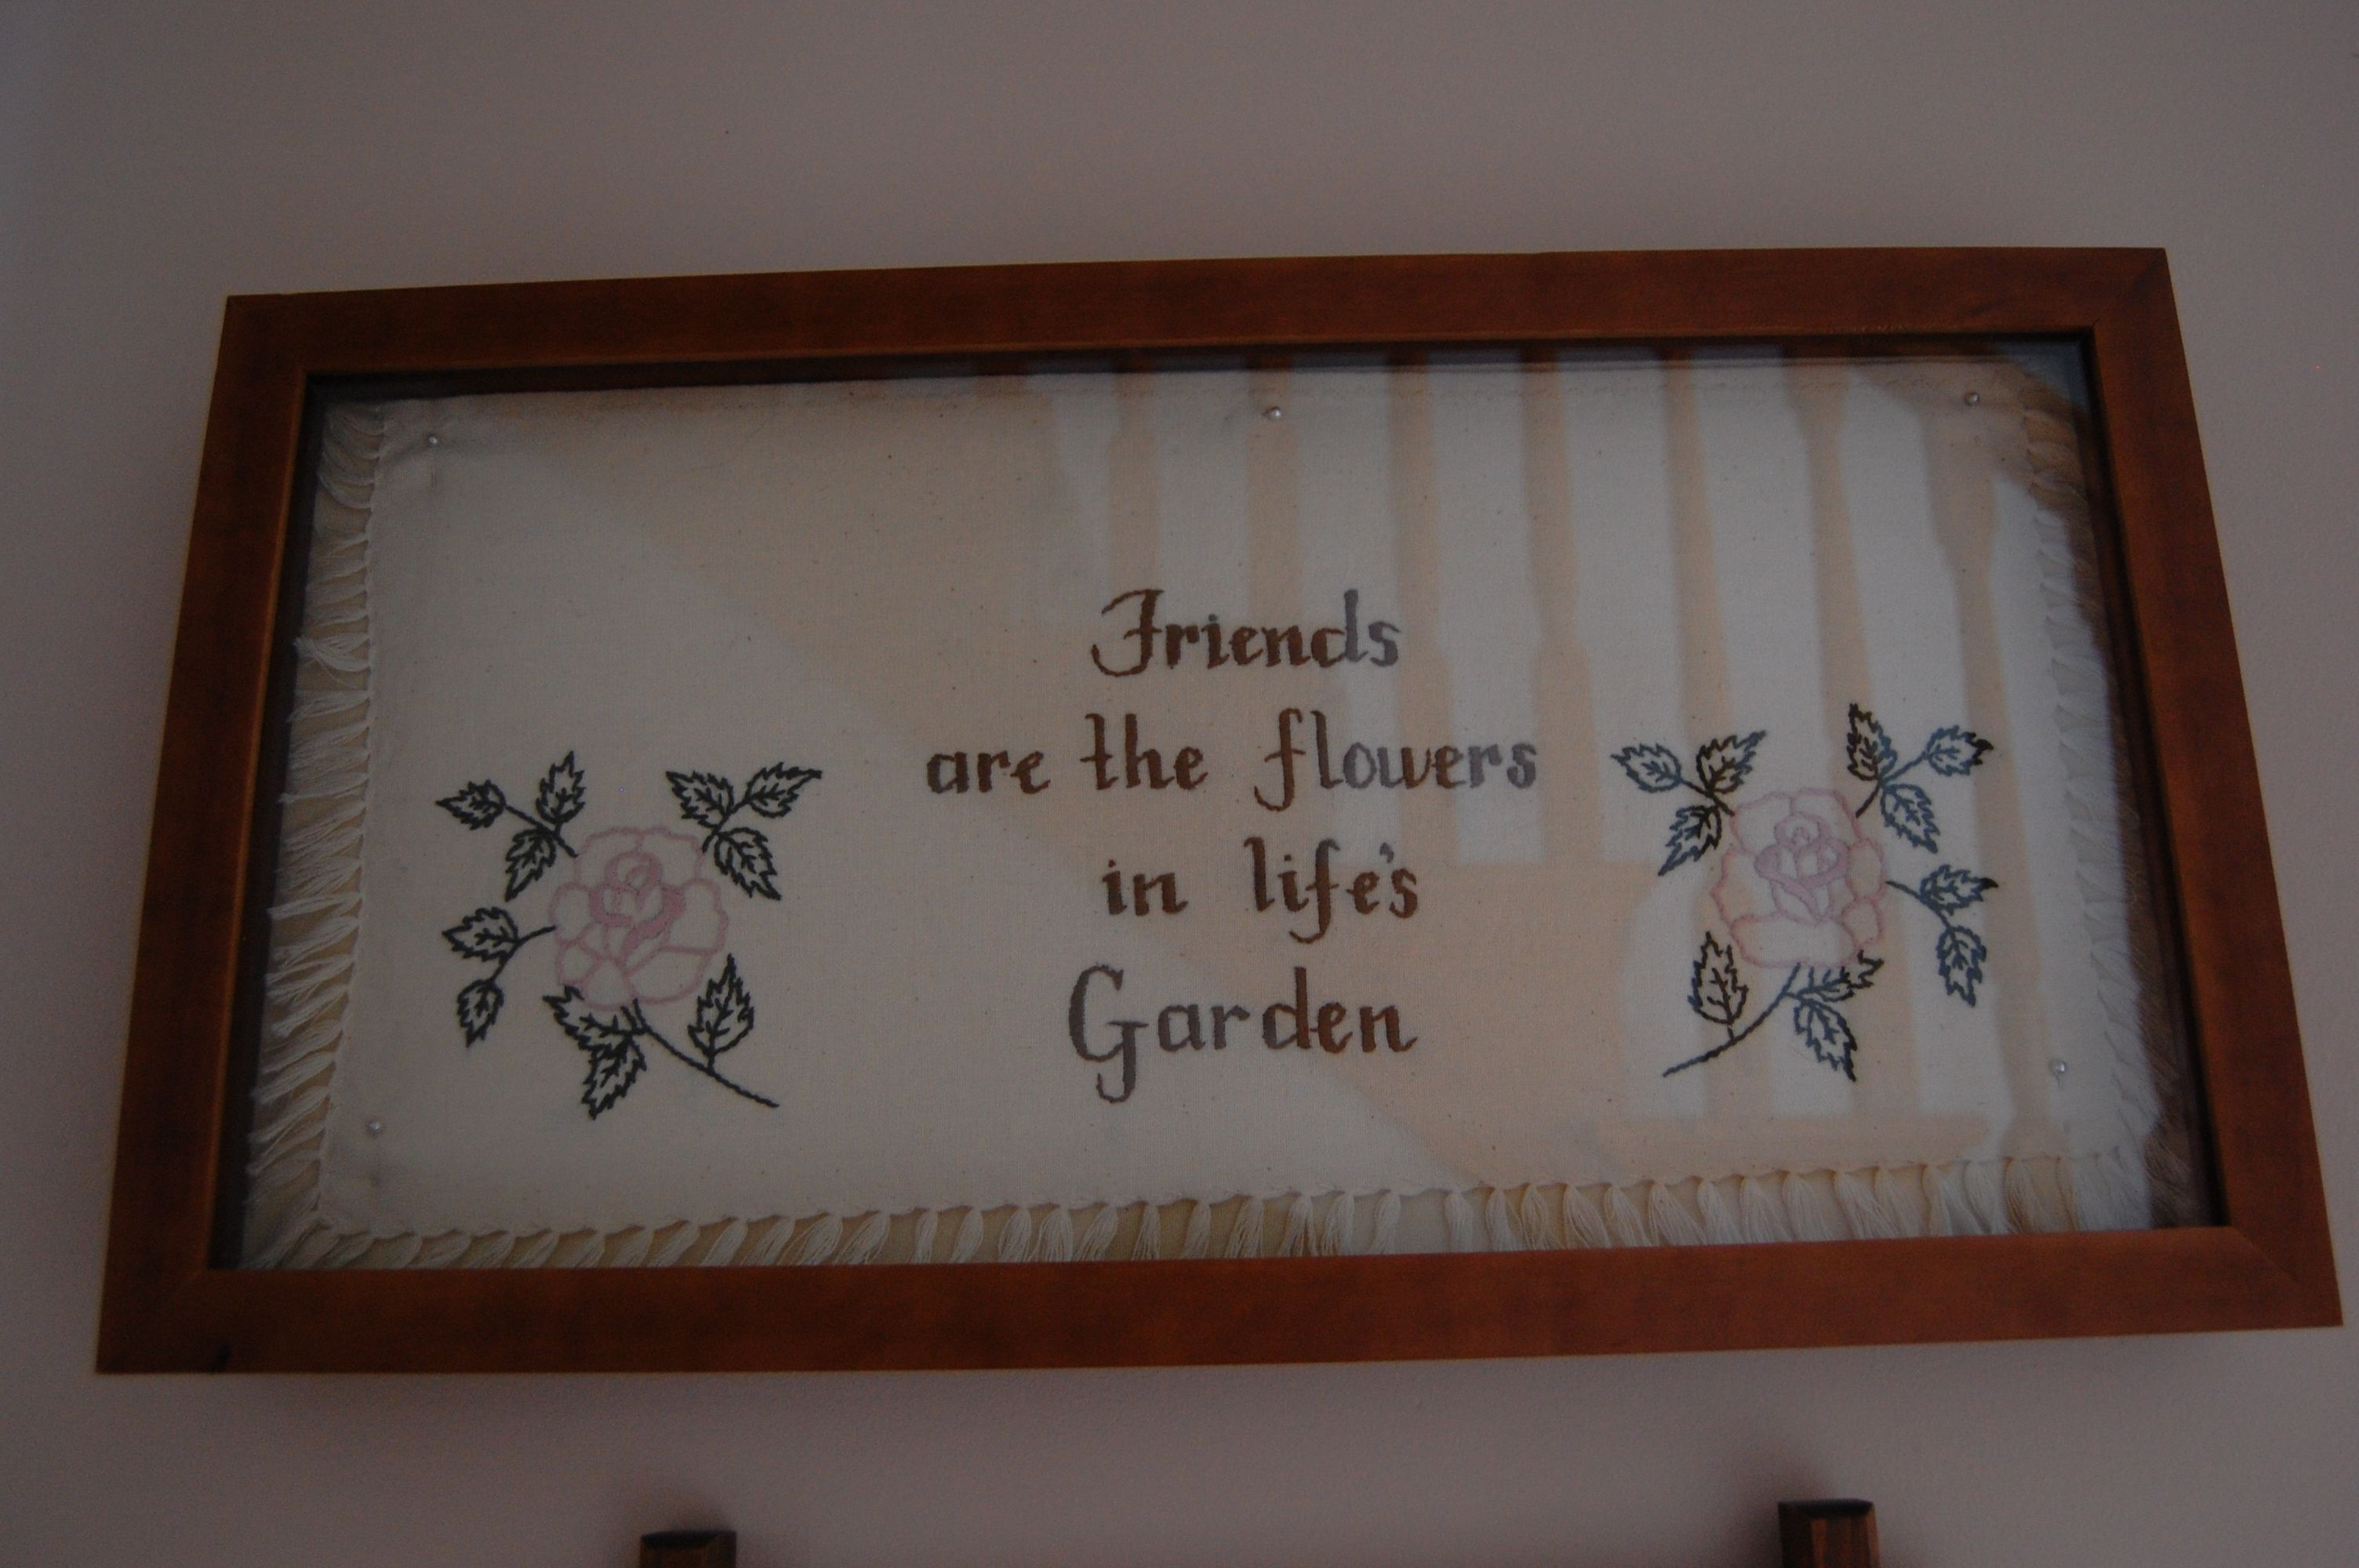 My good friend and neighbor, LaVerda, Amish wife and mother in her 30's, hand embroidered this lovely gift for me.